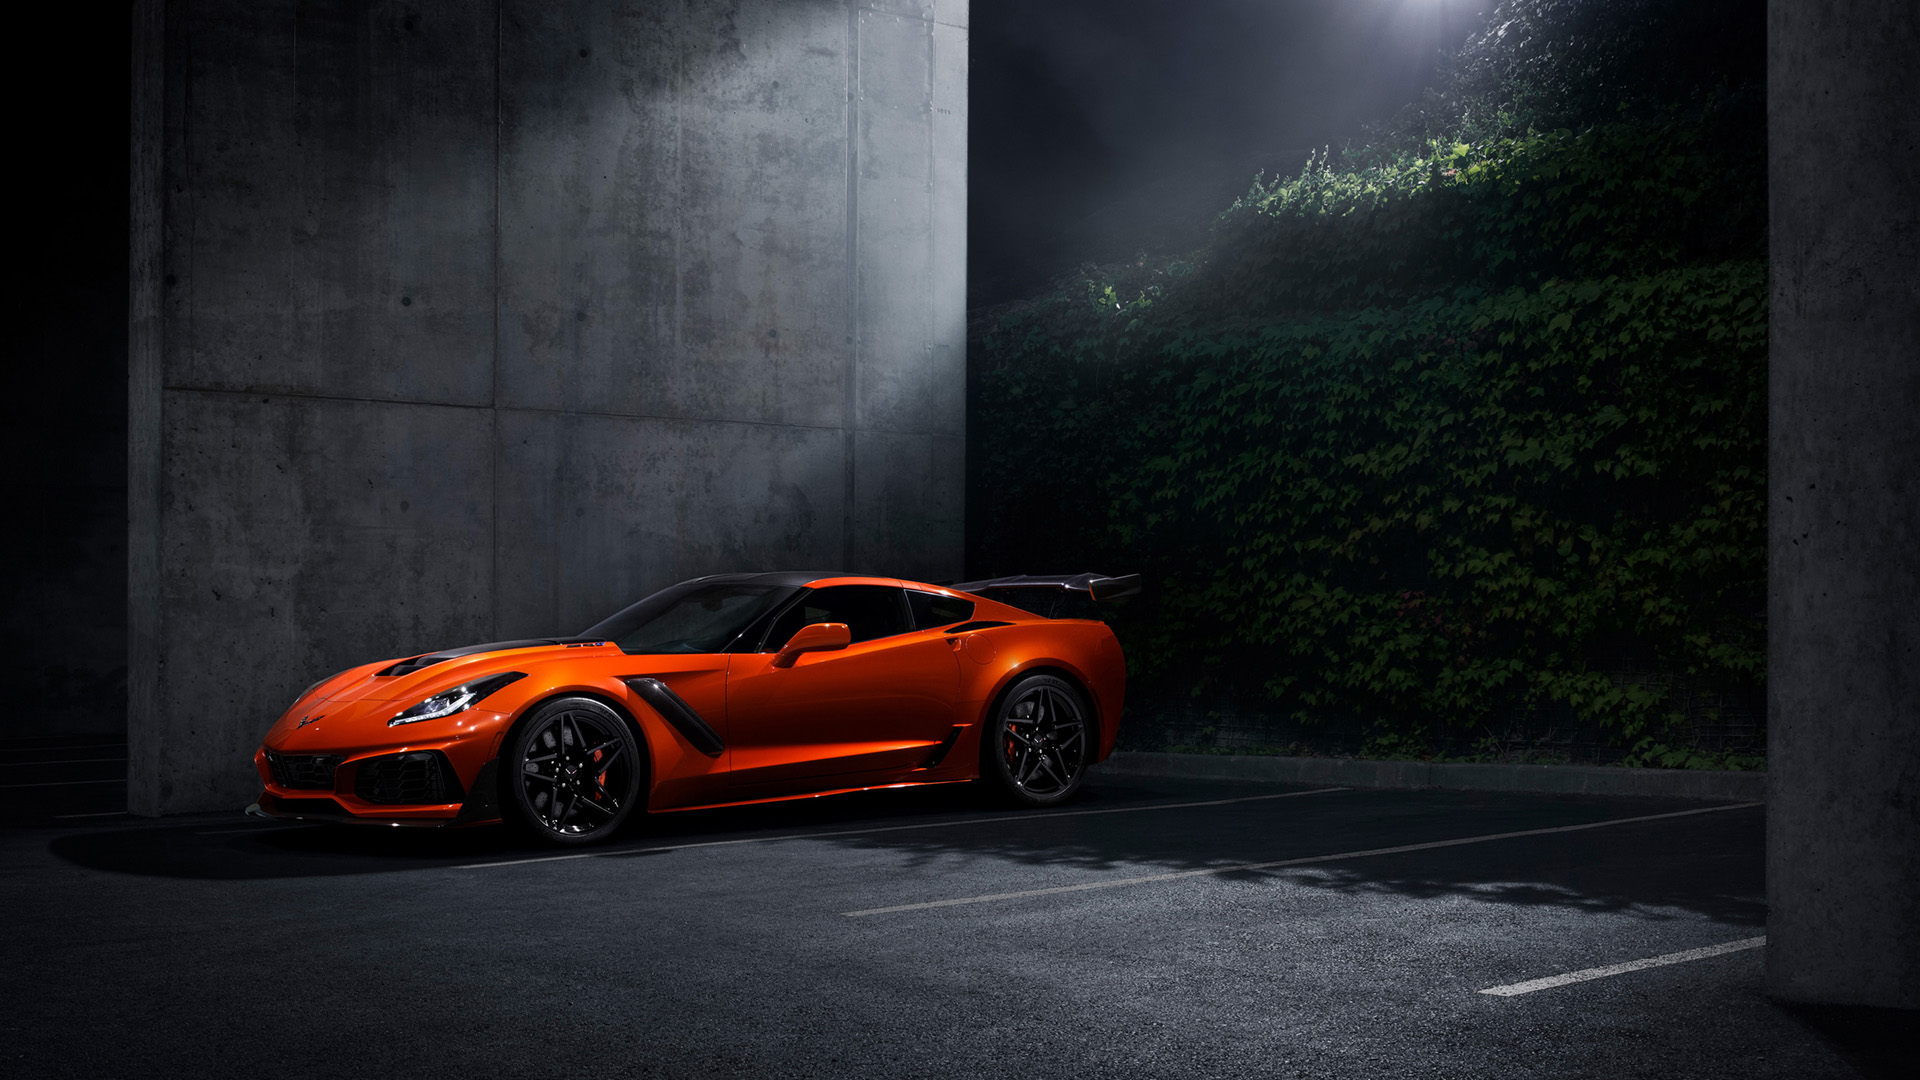 ZR1_01_Retouched.jpg